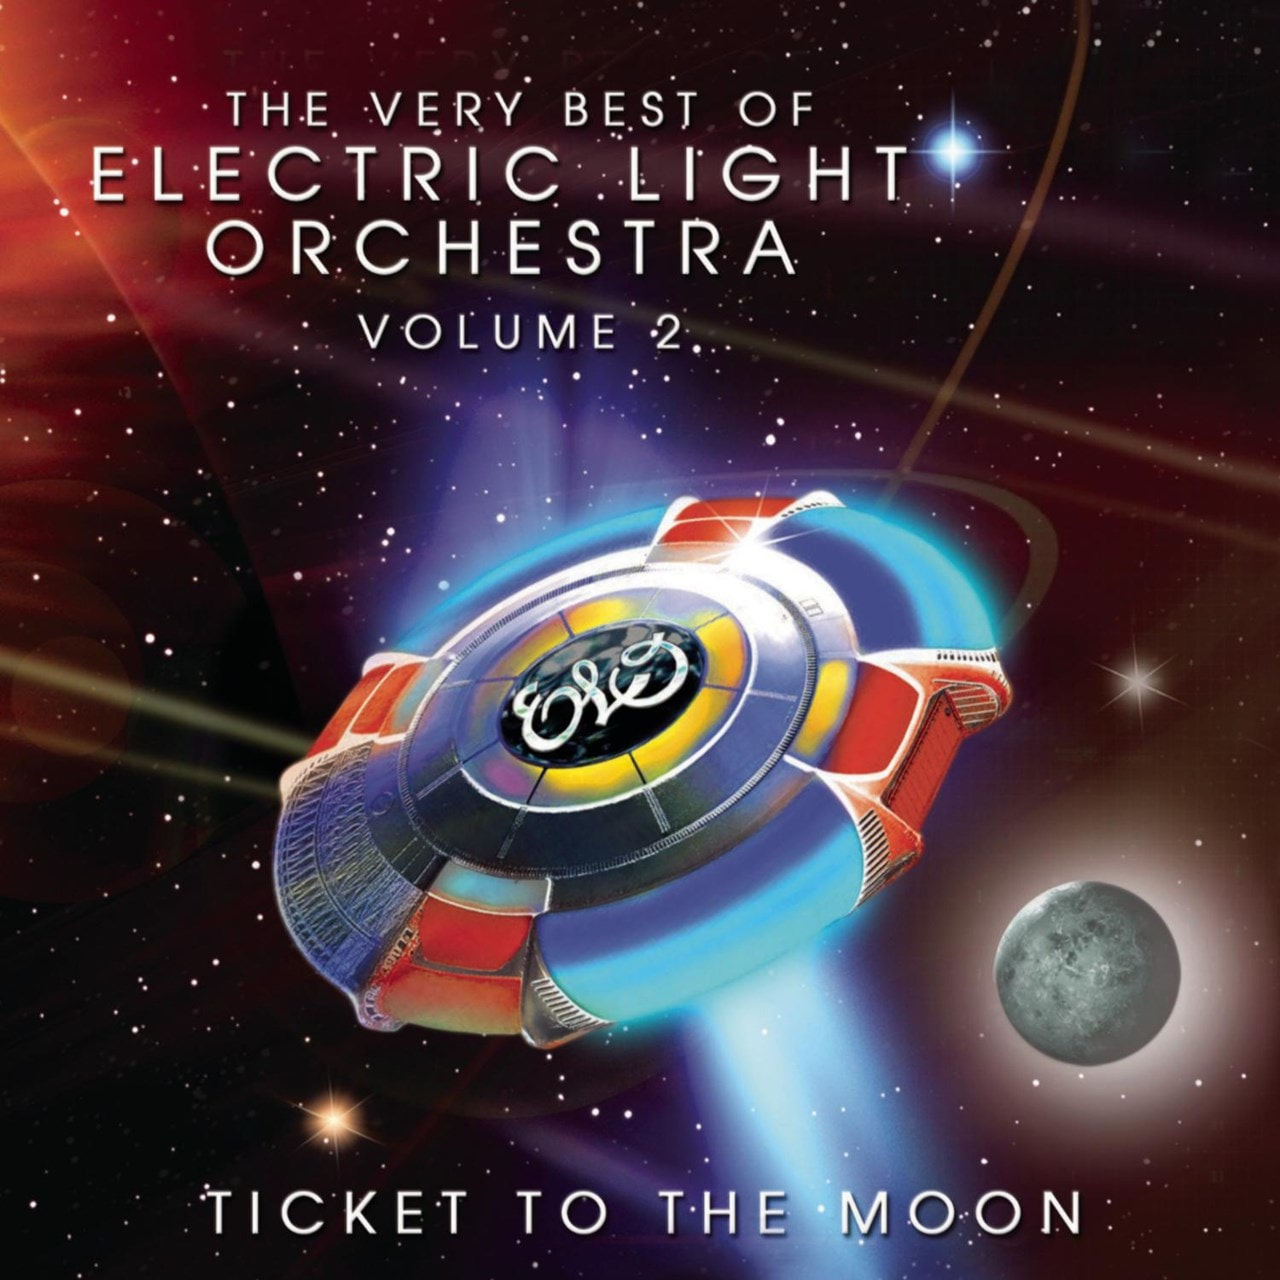 Very Best of Elo, The - Vol. 2 - Ticket to the Moon - 1